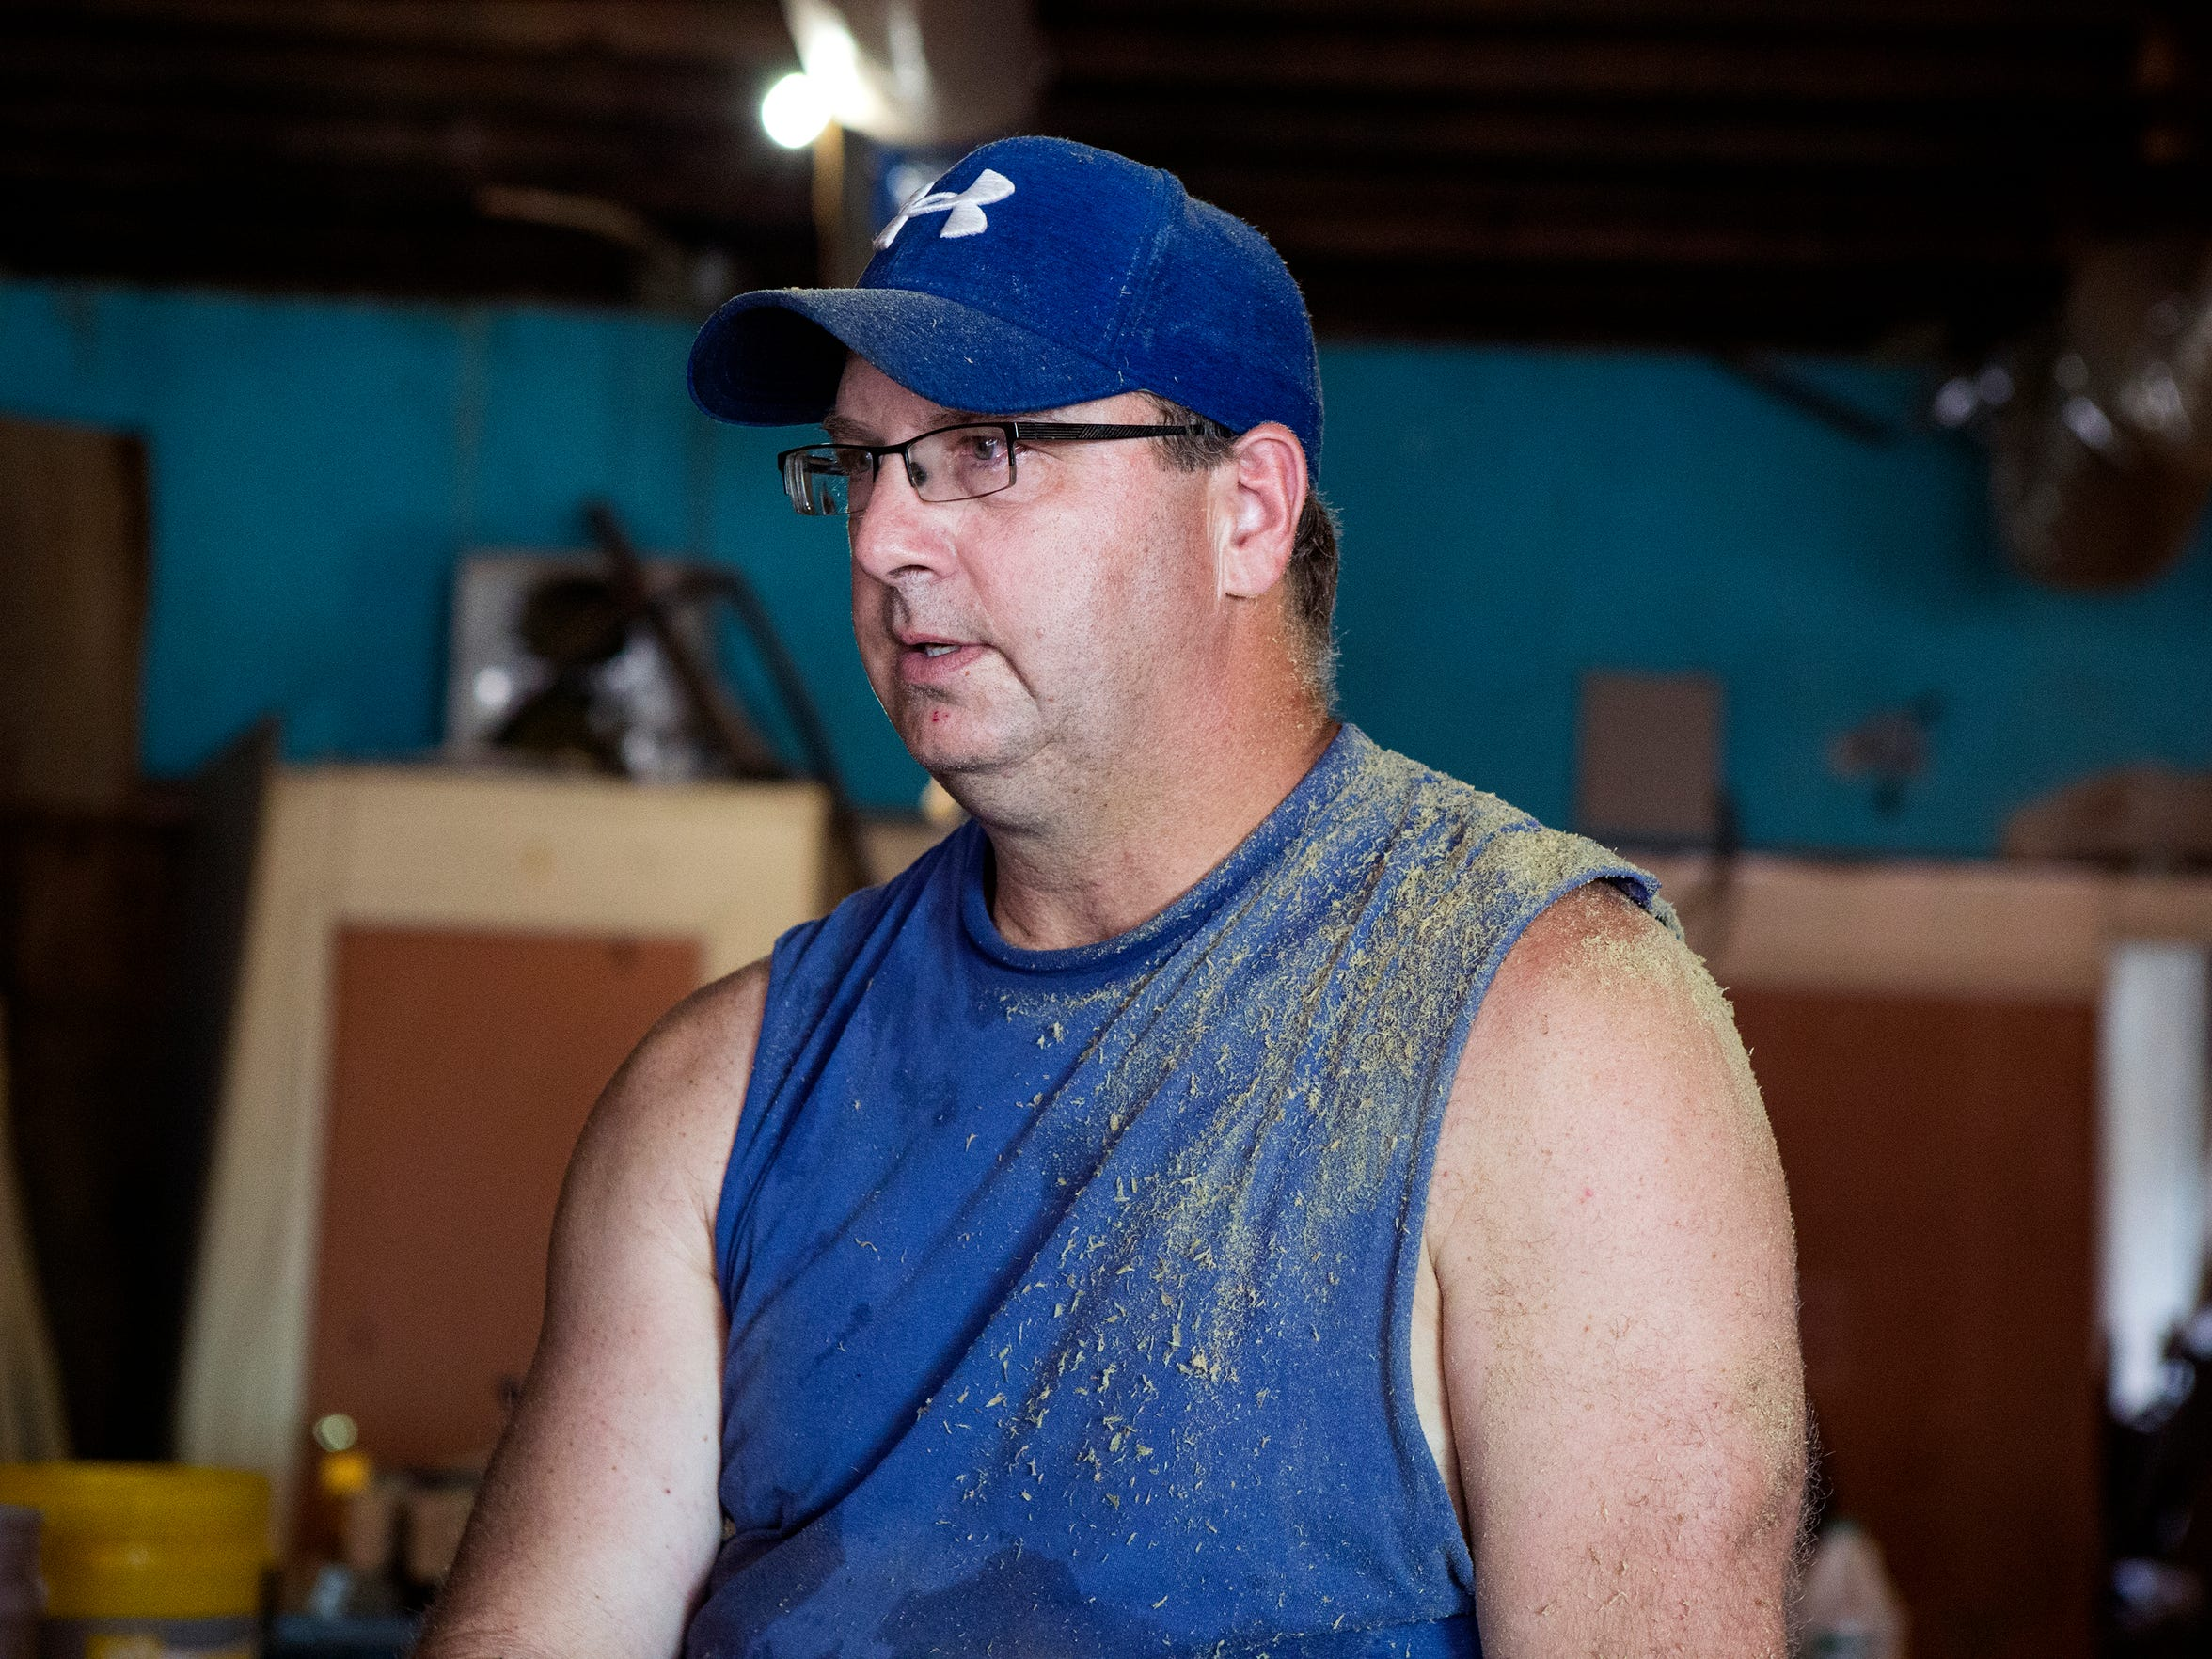 James Andrew's business, South Texas Creations, is located in downtown Aransas Pass, an area that could potentially impacted by flood plain designation changes. He said, Monday, June, 25, 2018, that he owns other properties and wasn't sure what impact that would have on his plans to build a shop for his business. The levee in Aransas Pass can't been certified, which could lead to higher flood insurance rates.